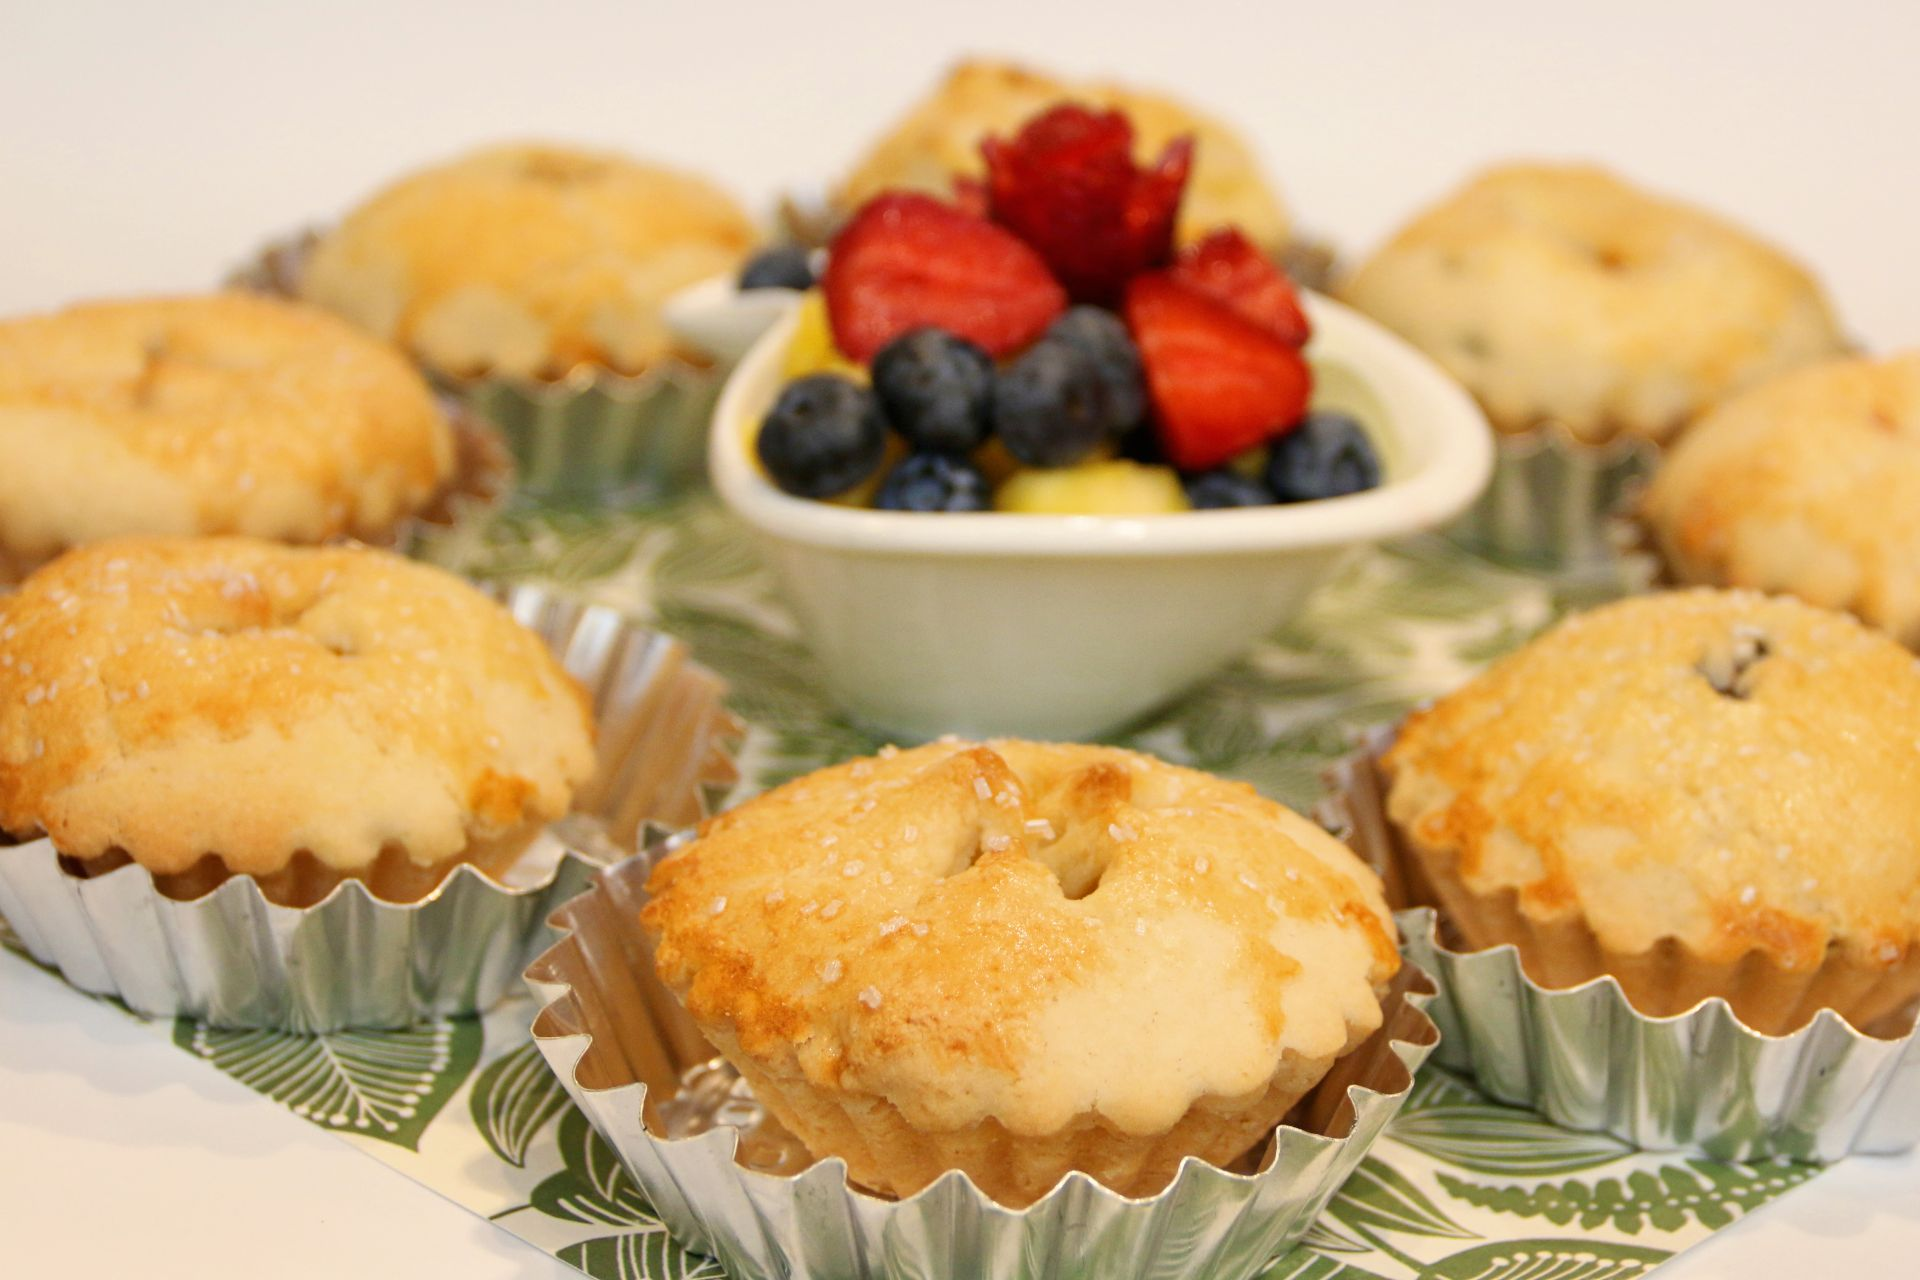 cornbread muffins served with fresh berries